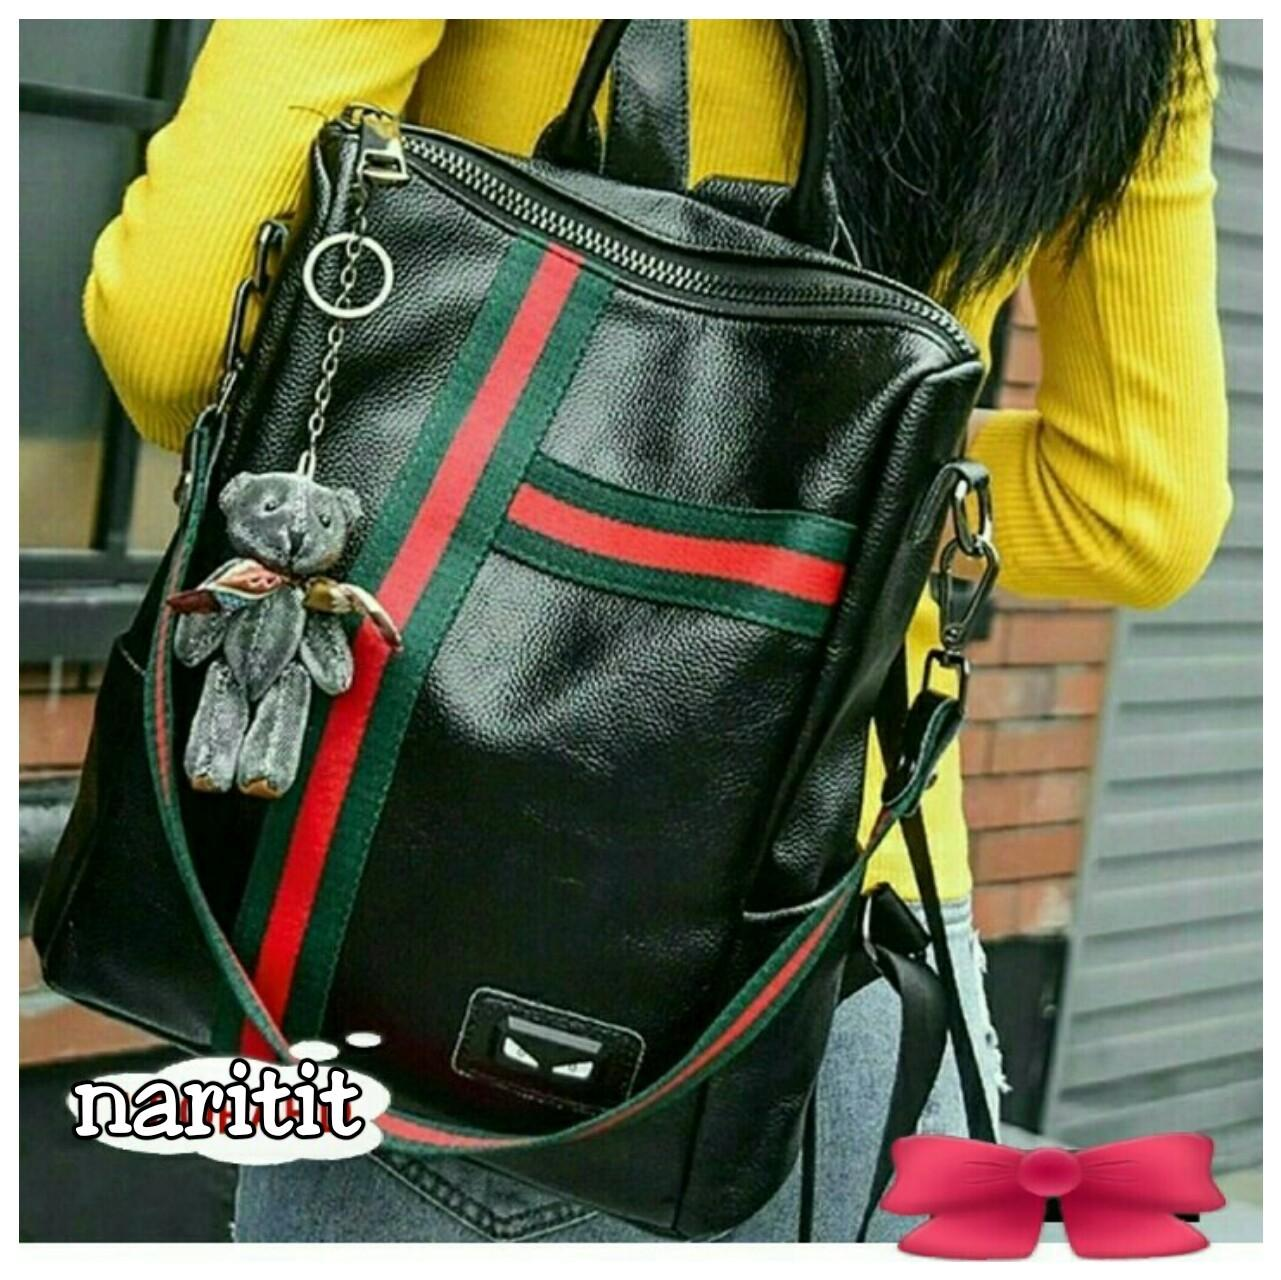 Tas Gucci Hitam R2 Ring's store